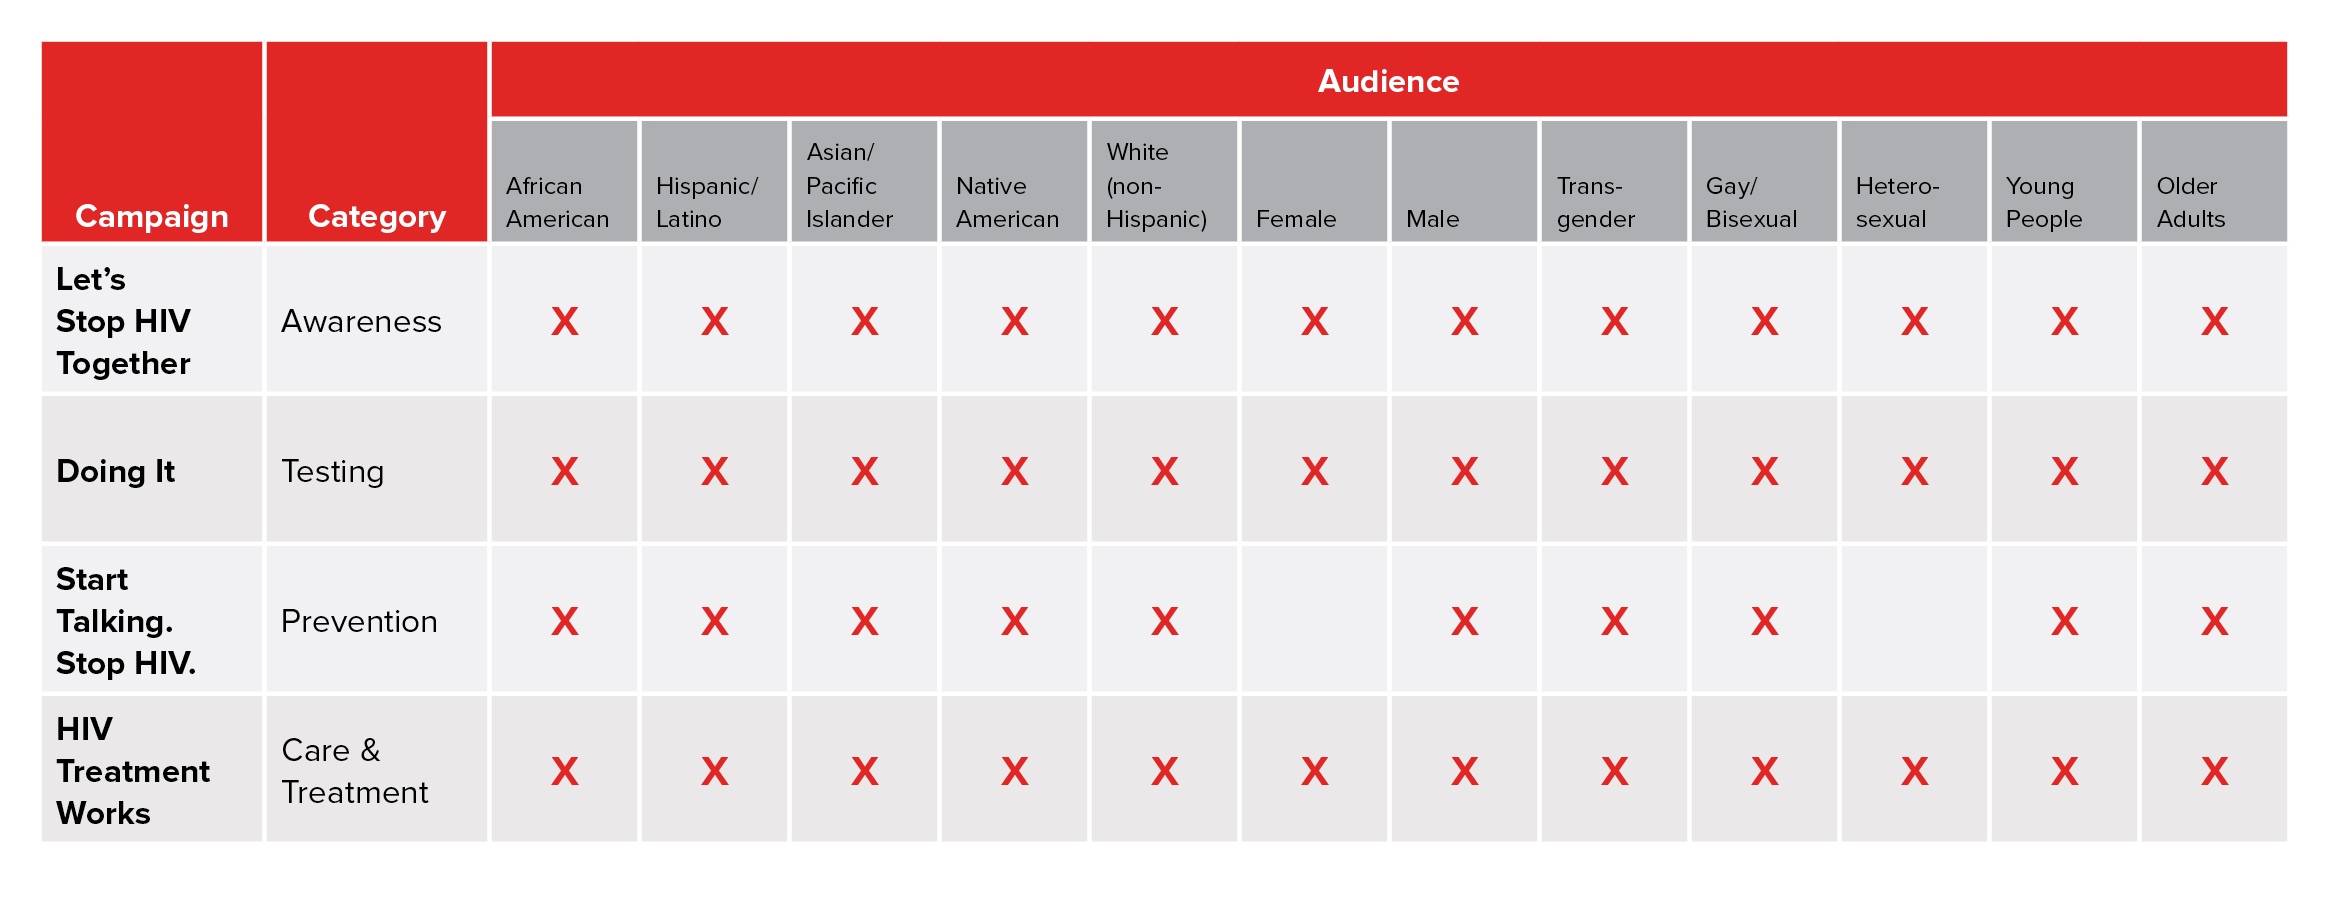 Audience matrix table of Act Against AIDS consumer campaigns: Let's Stop HIV Together, Doing It, Start Talking. Stop HIV., and HIV Treatment Works. Audiences include: African American, Hispanic/Latino, Asian/Pacific Islander, Native American, White (non-Hispanic), Female, Male, Transgender, Gay/Bisexual, Heterosexual, Young People, Older Adults. All audiences are marked off for every campaign except female and heterosexual for Start Talking. Stop HIV.